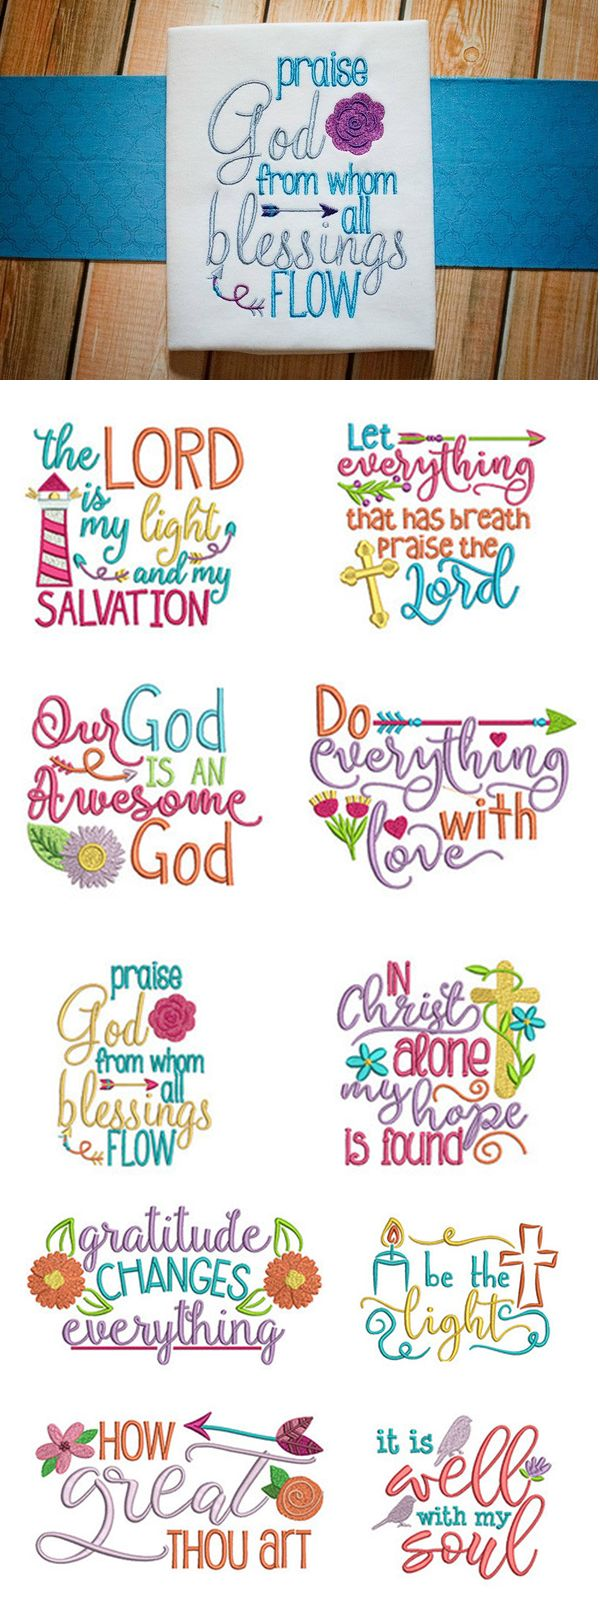 Our Soulful Sayings Set 2 features 12 beautiful, inspiring Christian sayings in 4 sizes each: 4x4 5x7 6x10 and 8x8 - Wonderful for a wide variety of projects!!